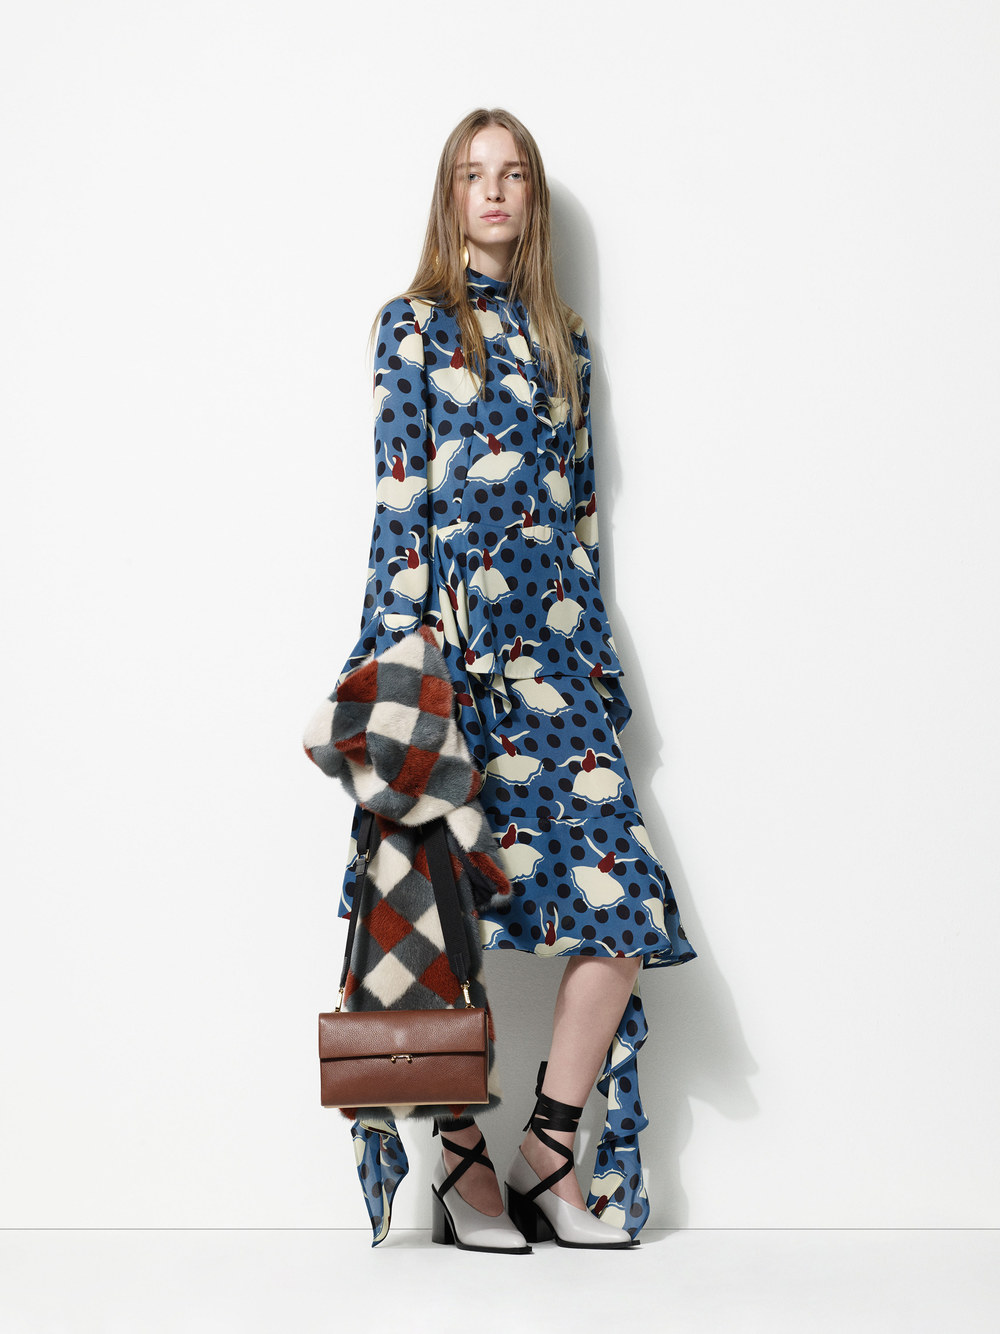 marni-pre-fall-2016-lookbook-10.jpg